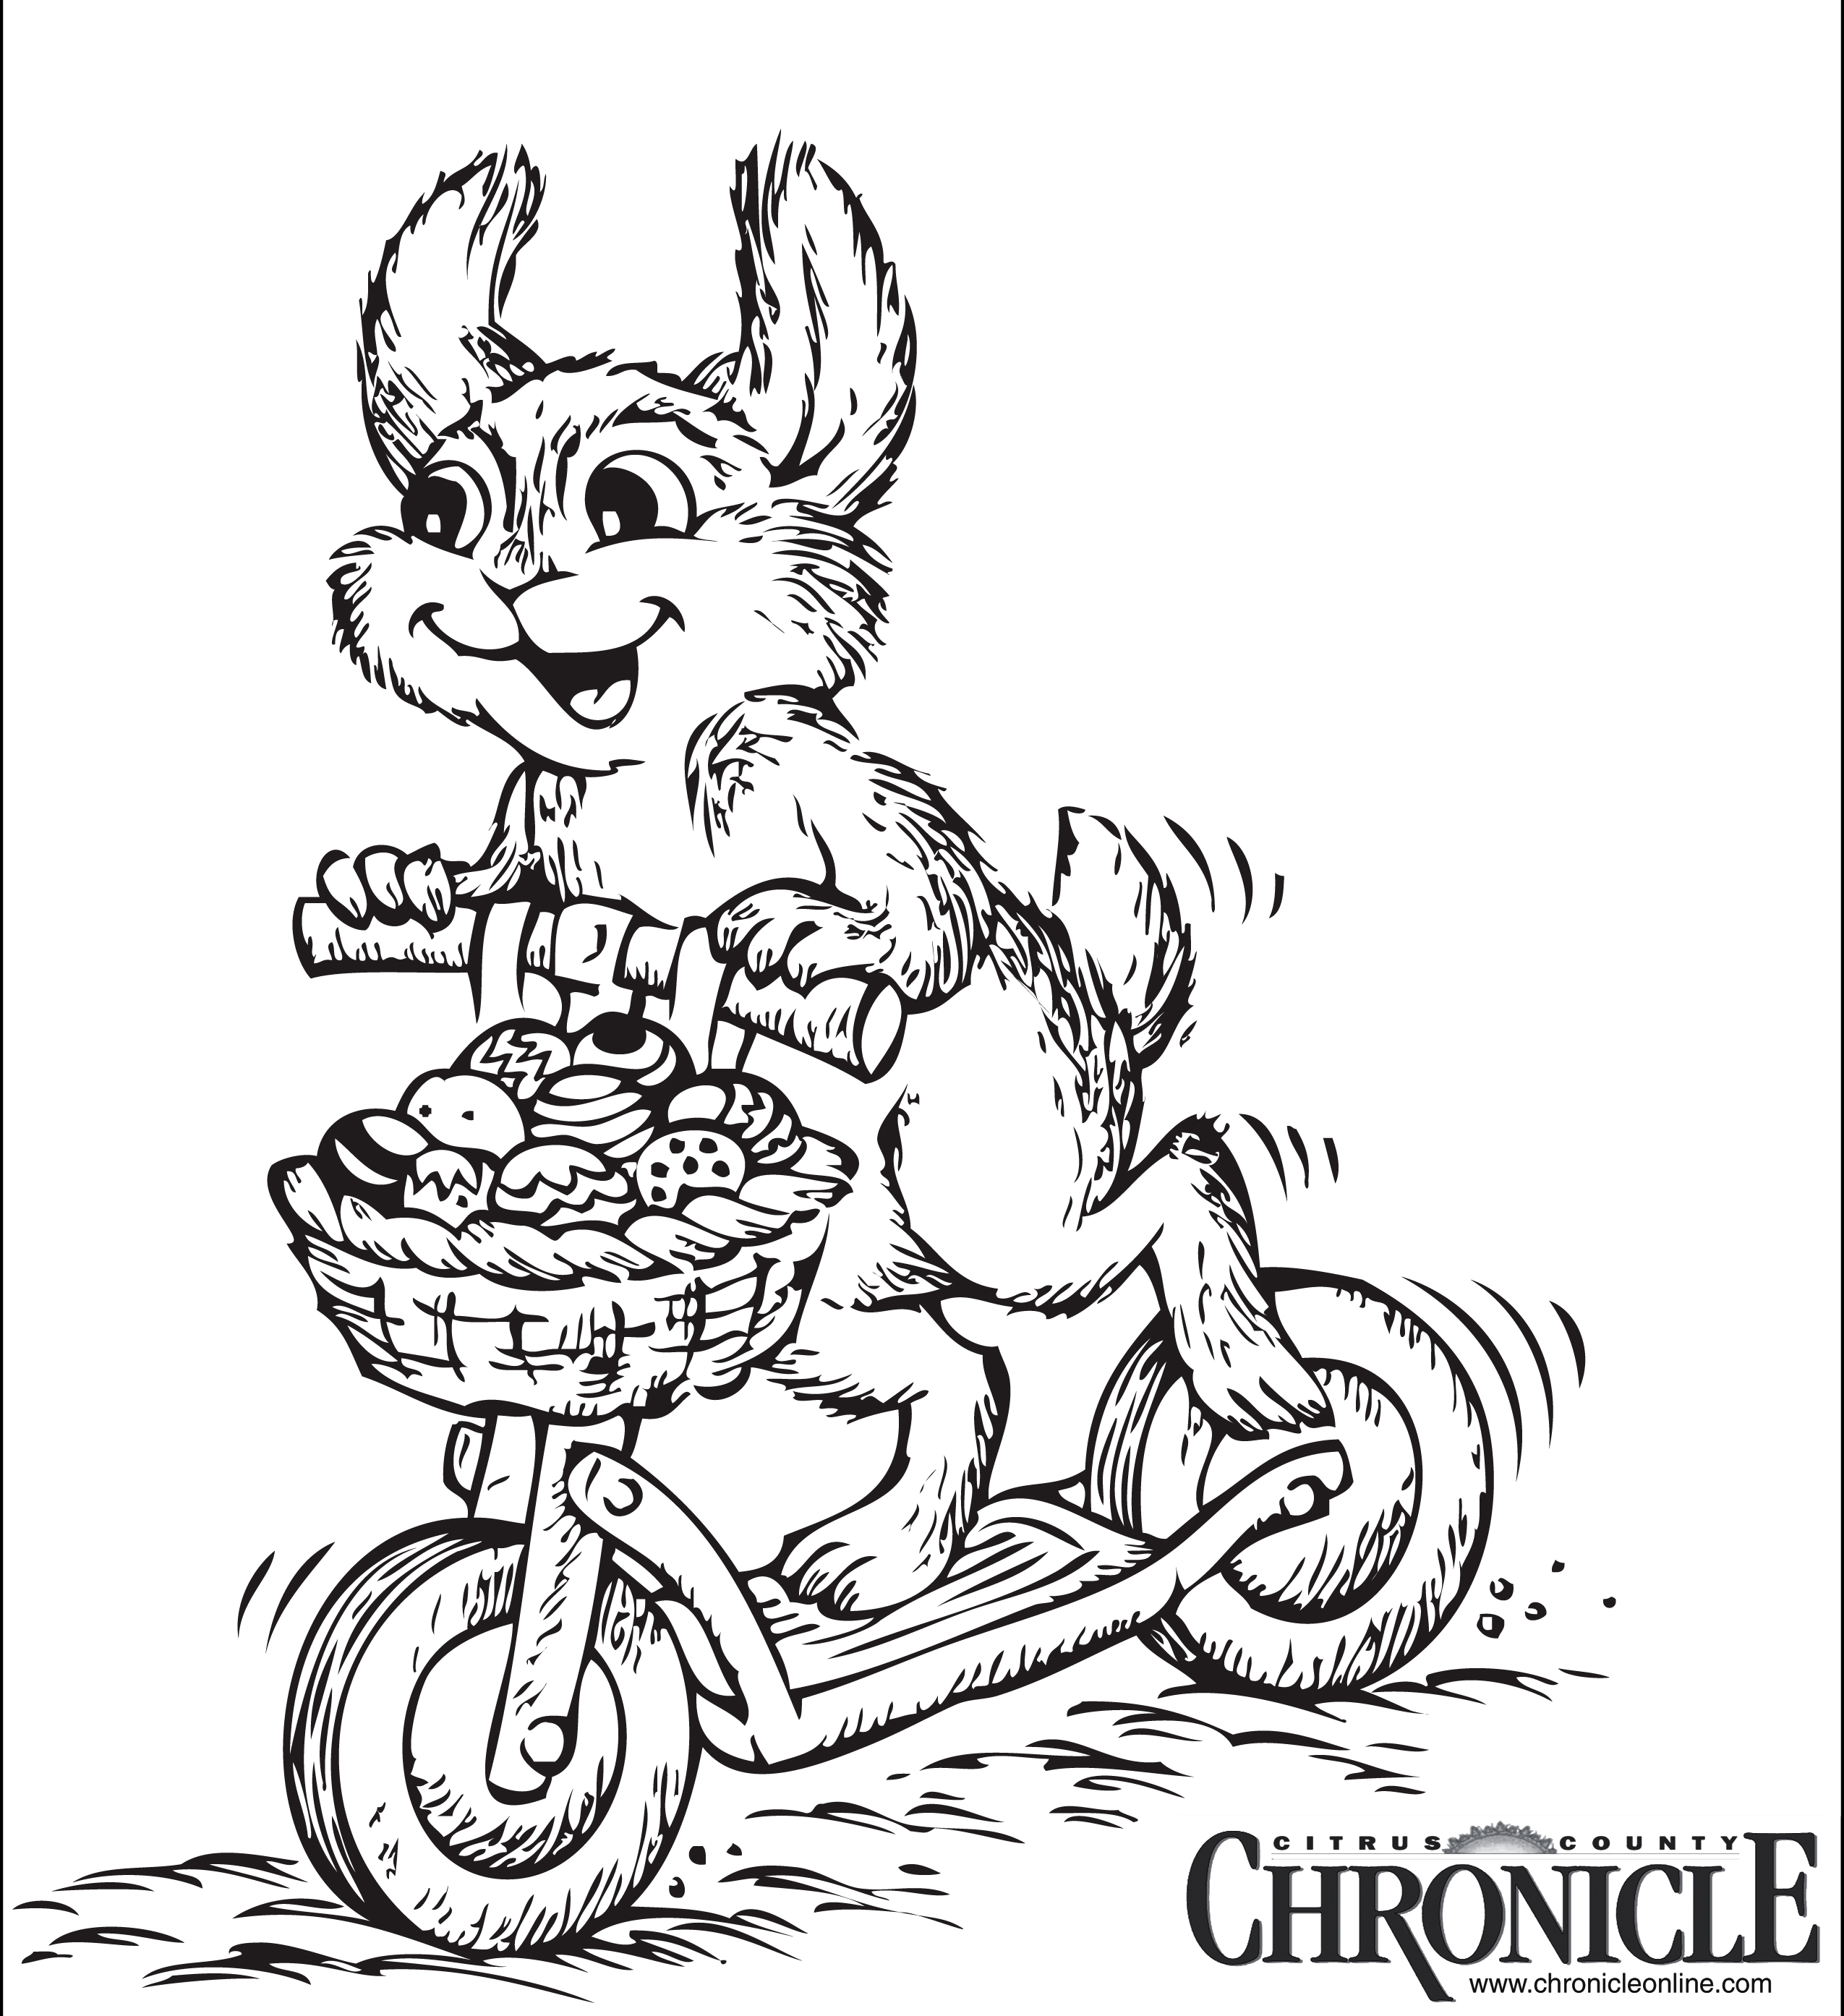 Citrus County Easter Coloring Title